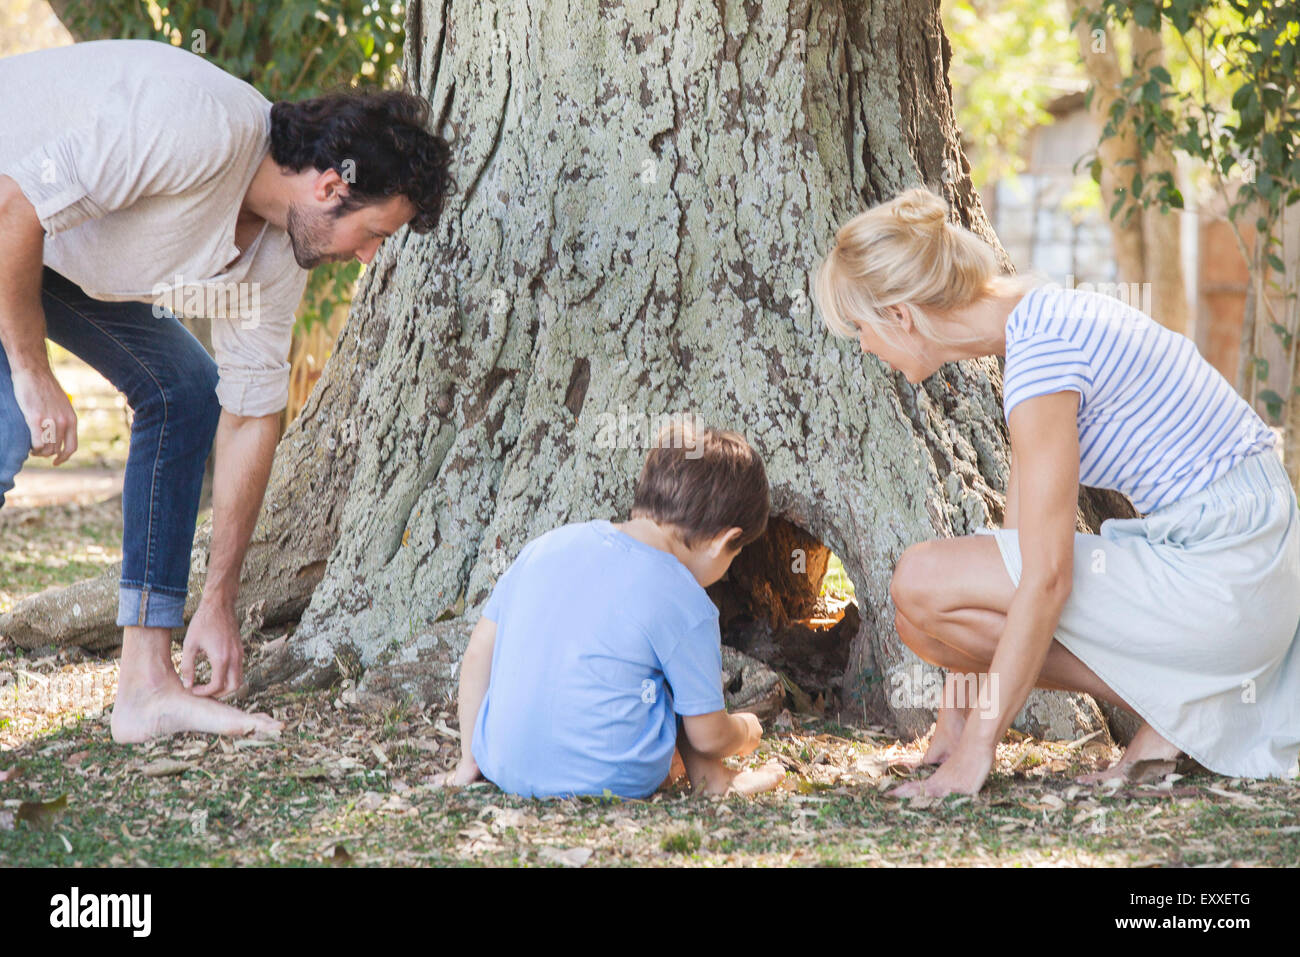 Family discovering hollow tree trunk - Stock Image